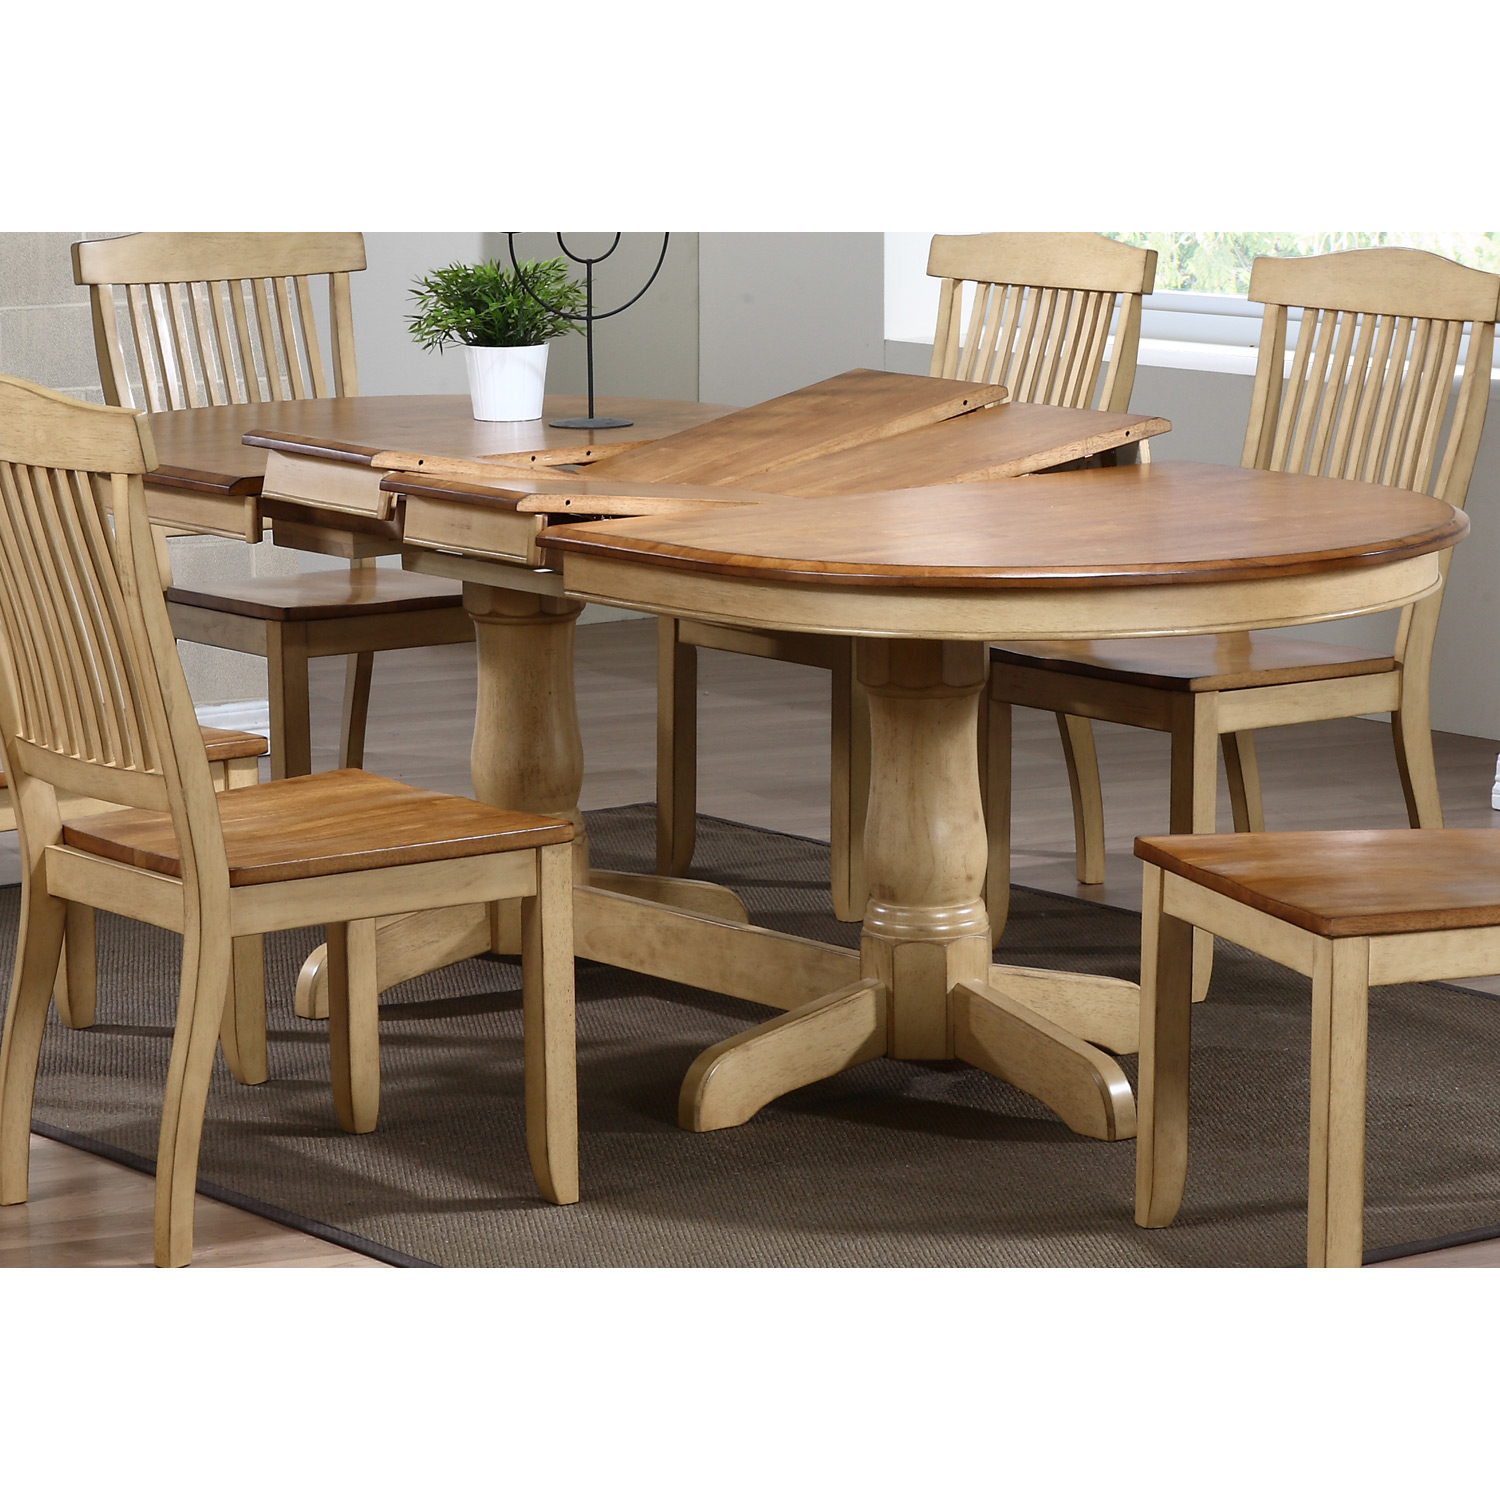 Gatsby Oval Dining Table - Double Butterfly Leaf, Honey & Sand - ICON-OV90-DT-HN-SD